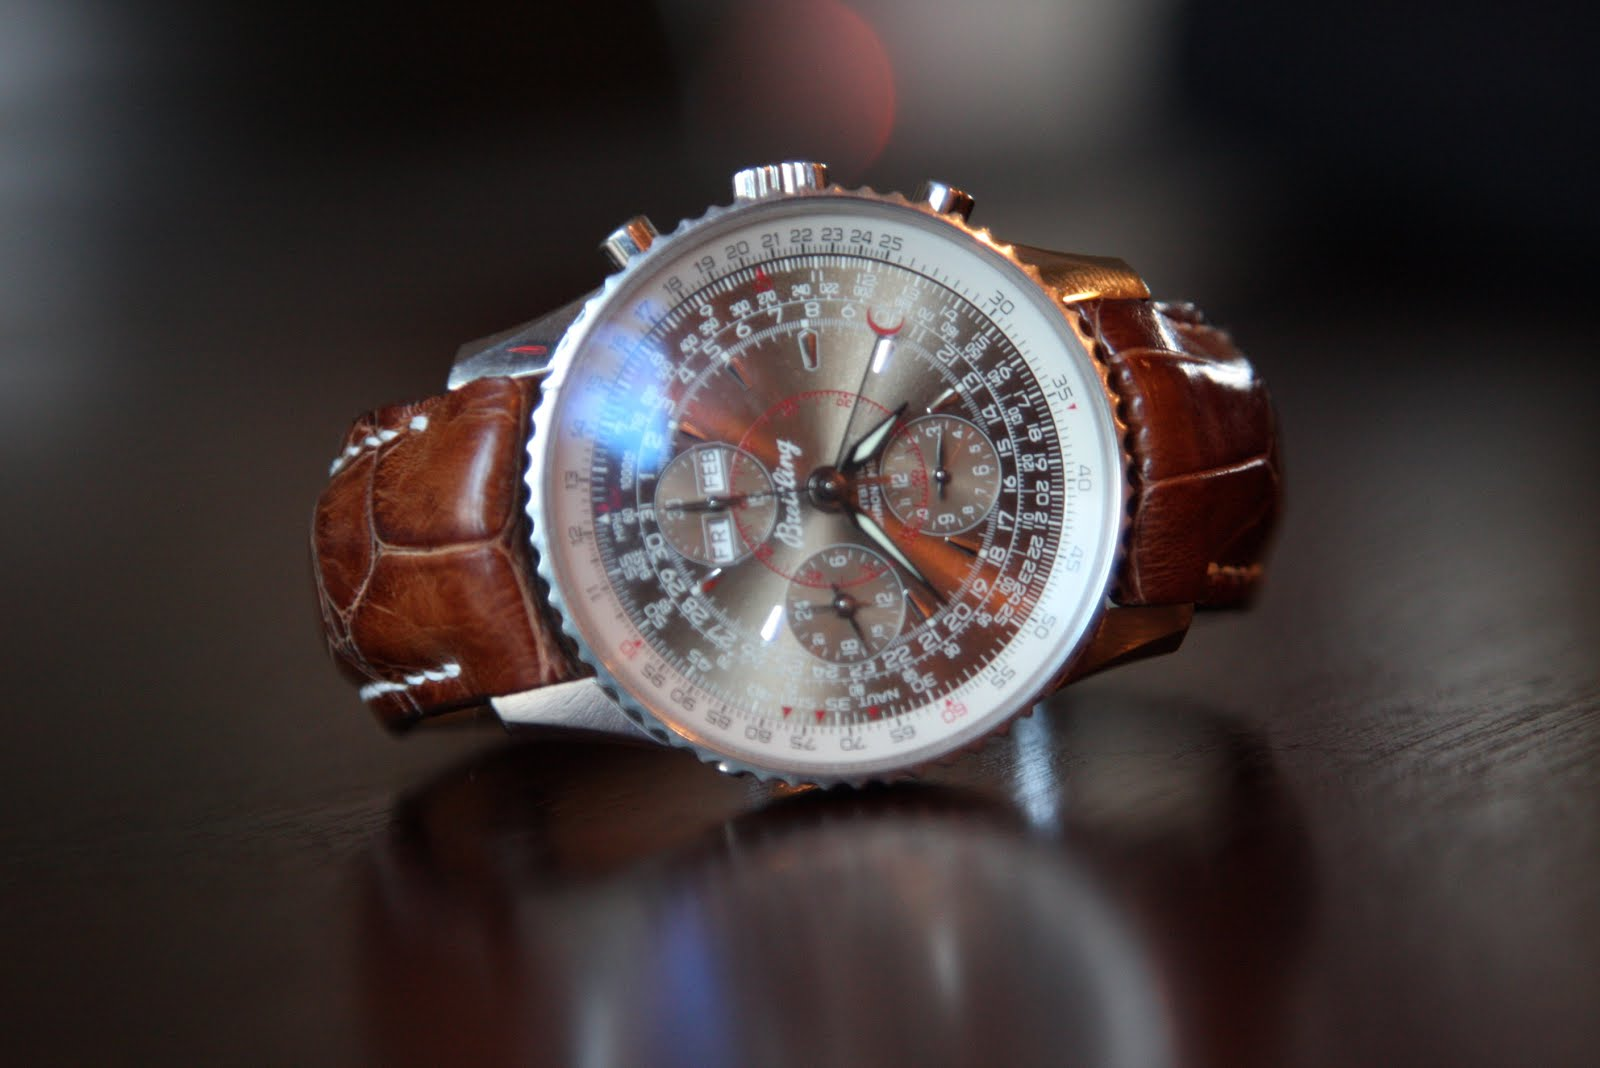 Ian's Breitling Montbrillant Navitimer on Vintage Cognac Alligator